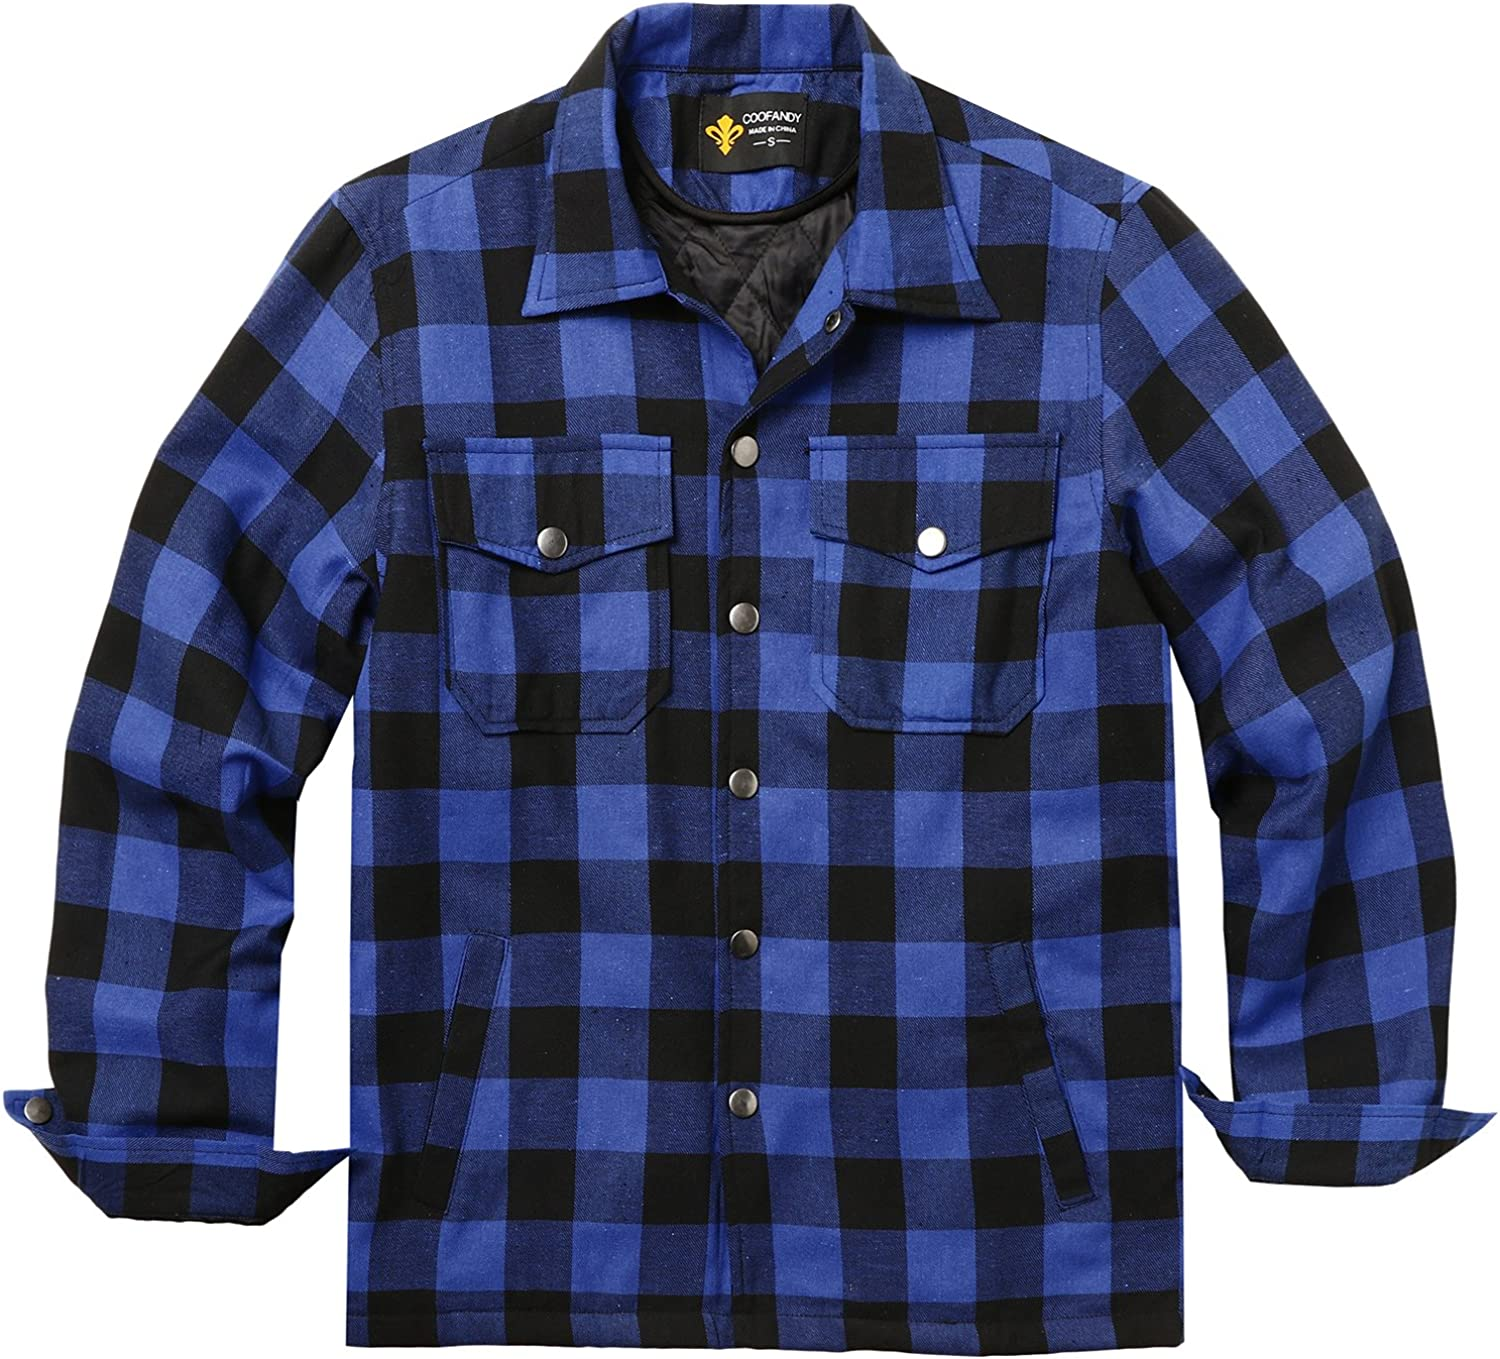 B01MRN669L COOFANDY Mens Flannel Thermal Lined Plaid Button Down Shirt Jacket Outdoor Coat 81A8CWcF1dL